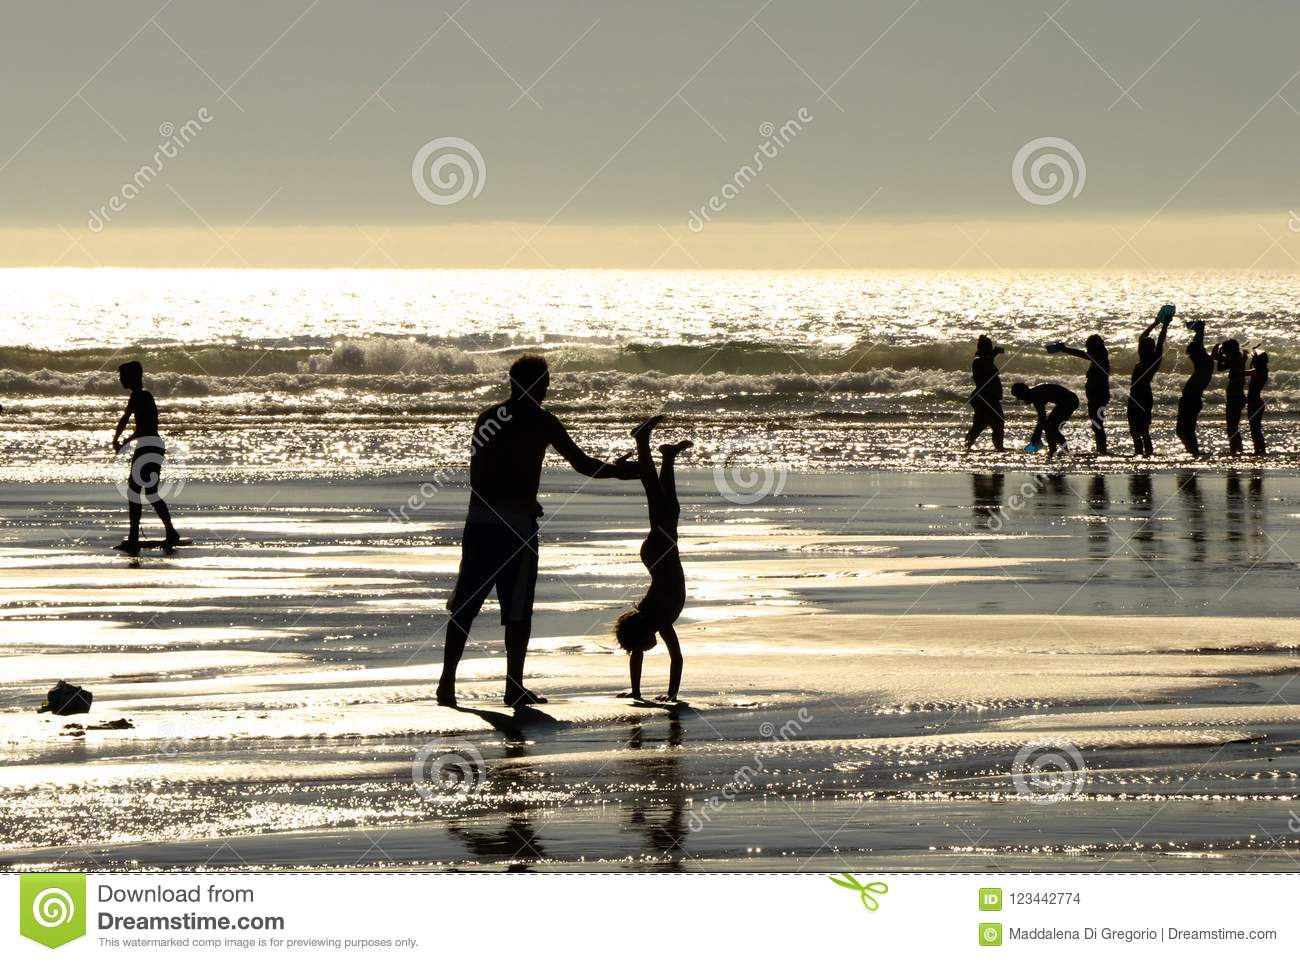 Playful Silhouettes at sunset_3